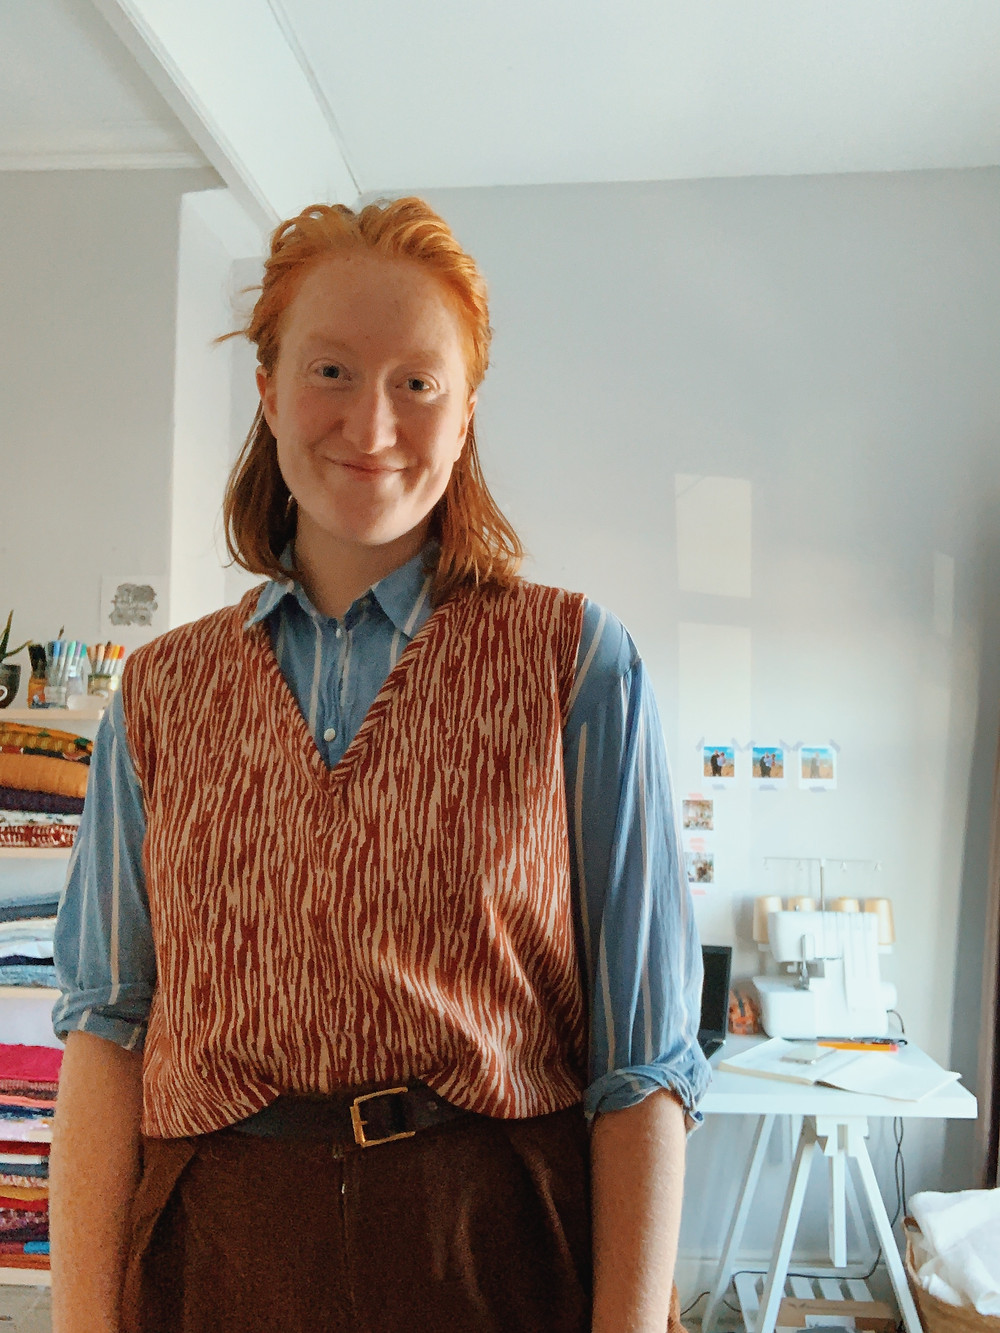 [Picture 1 - Roisin wears a self-drafted Grandad Vest, blue shirt and brown cord Terra Trousers]